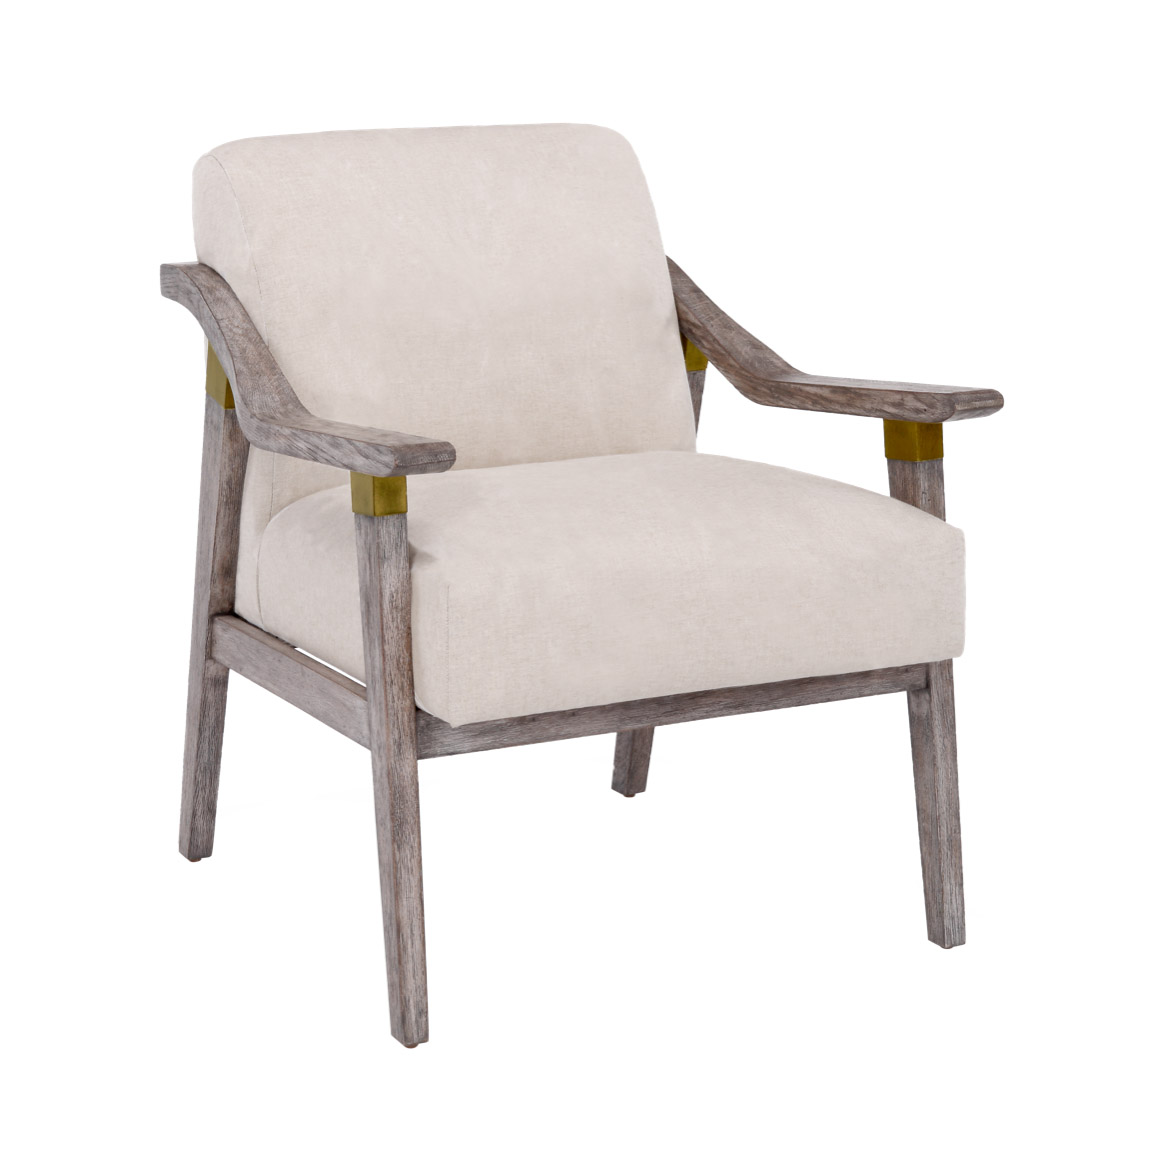 DEL MAR CHAIR (1).jpg